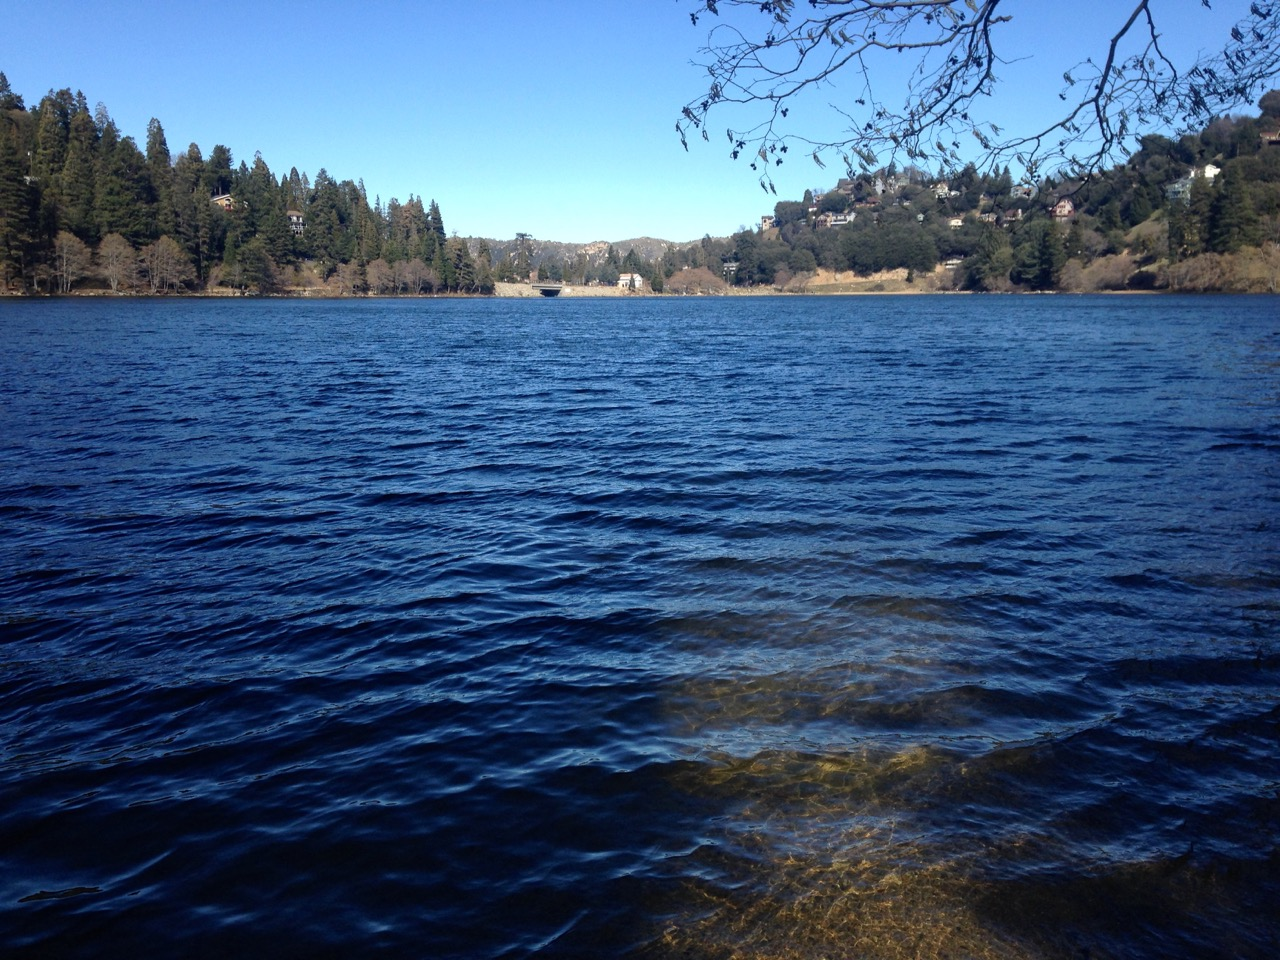 Lake Gregory Regional Park – Crestline, California